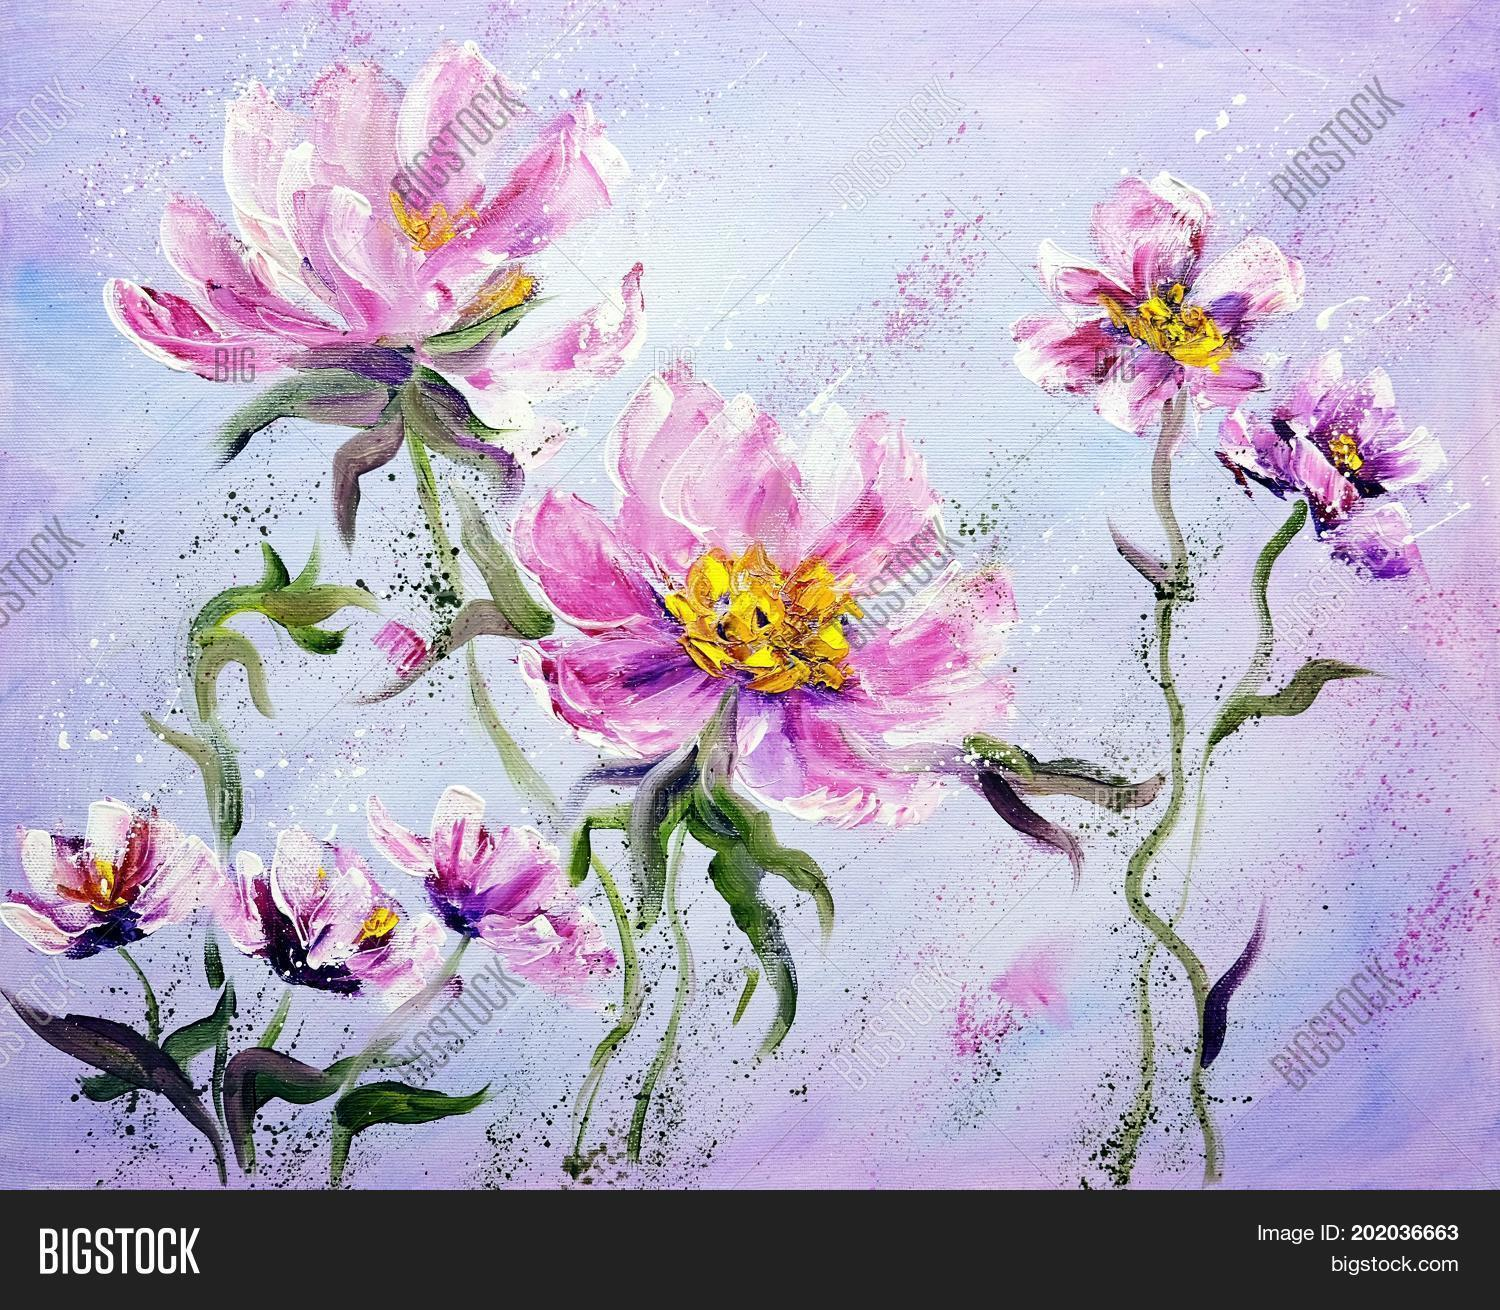 Hand Painted Modern Image Photo Free Trial Bigstock